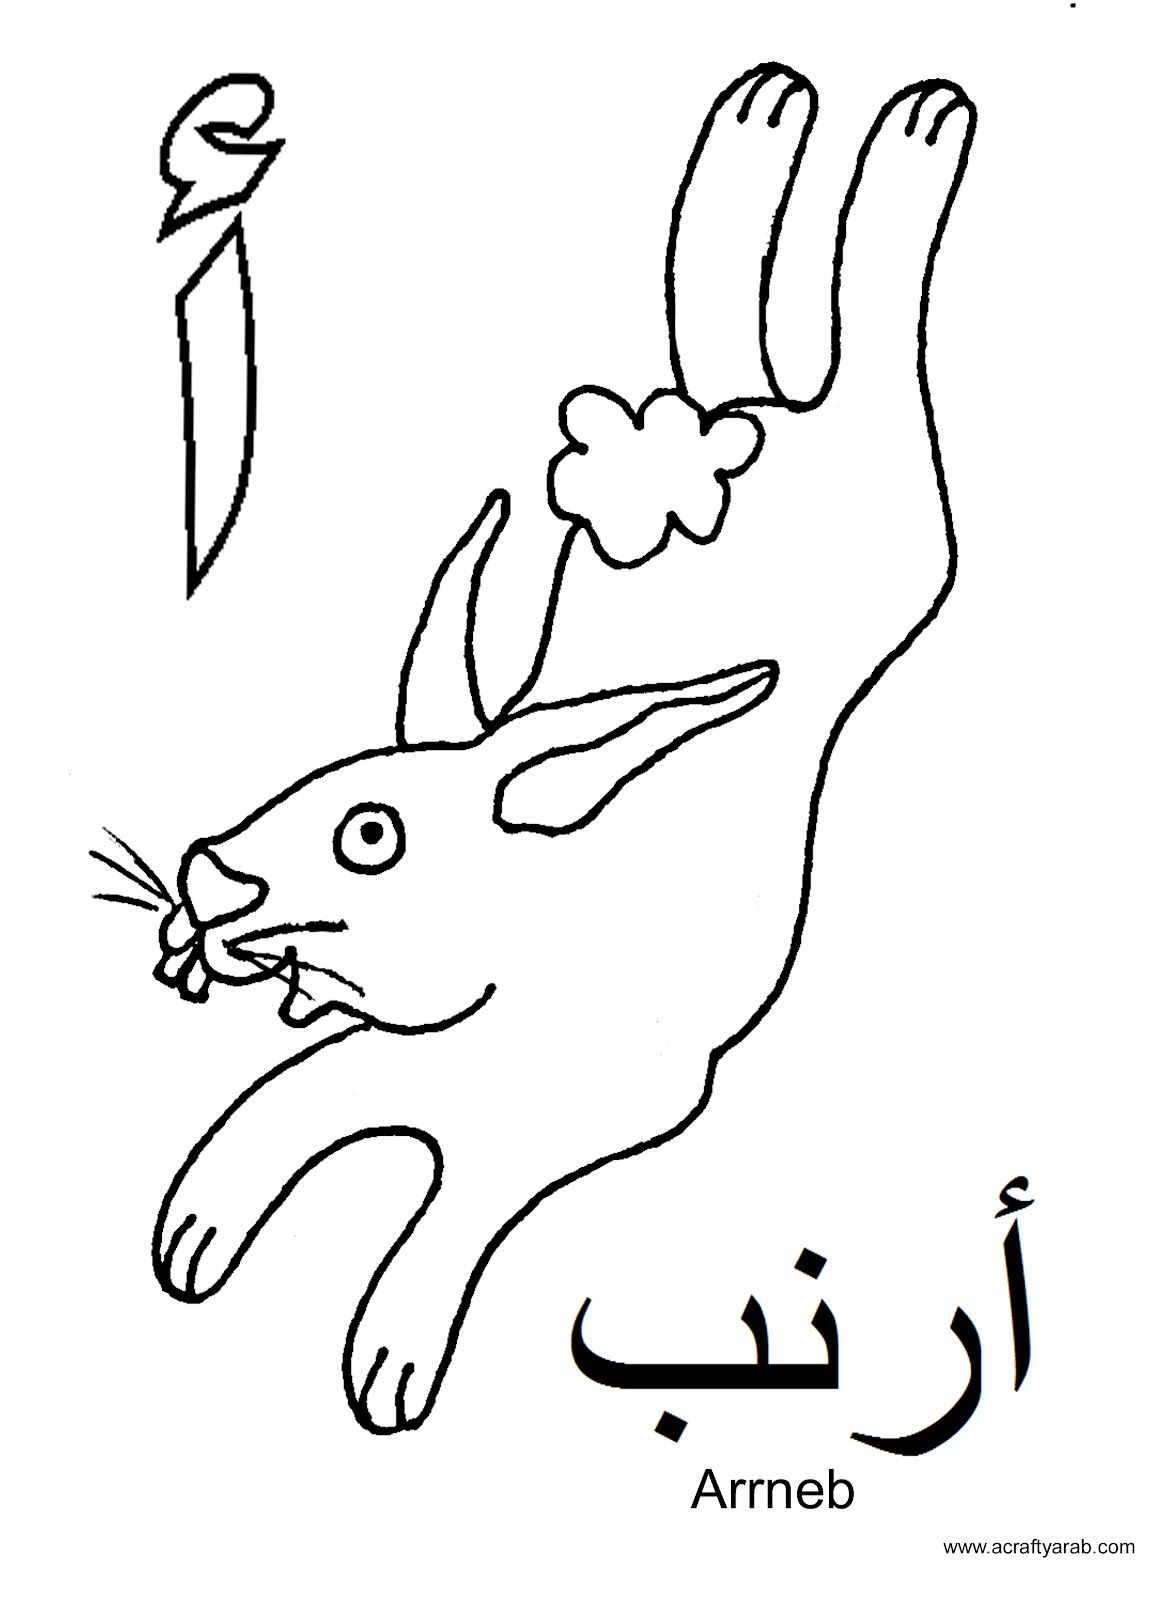 A Crafty Arab Arabic Alphabet Coloring Pages If Is For Arrnab